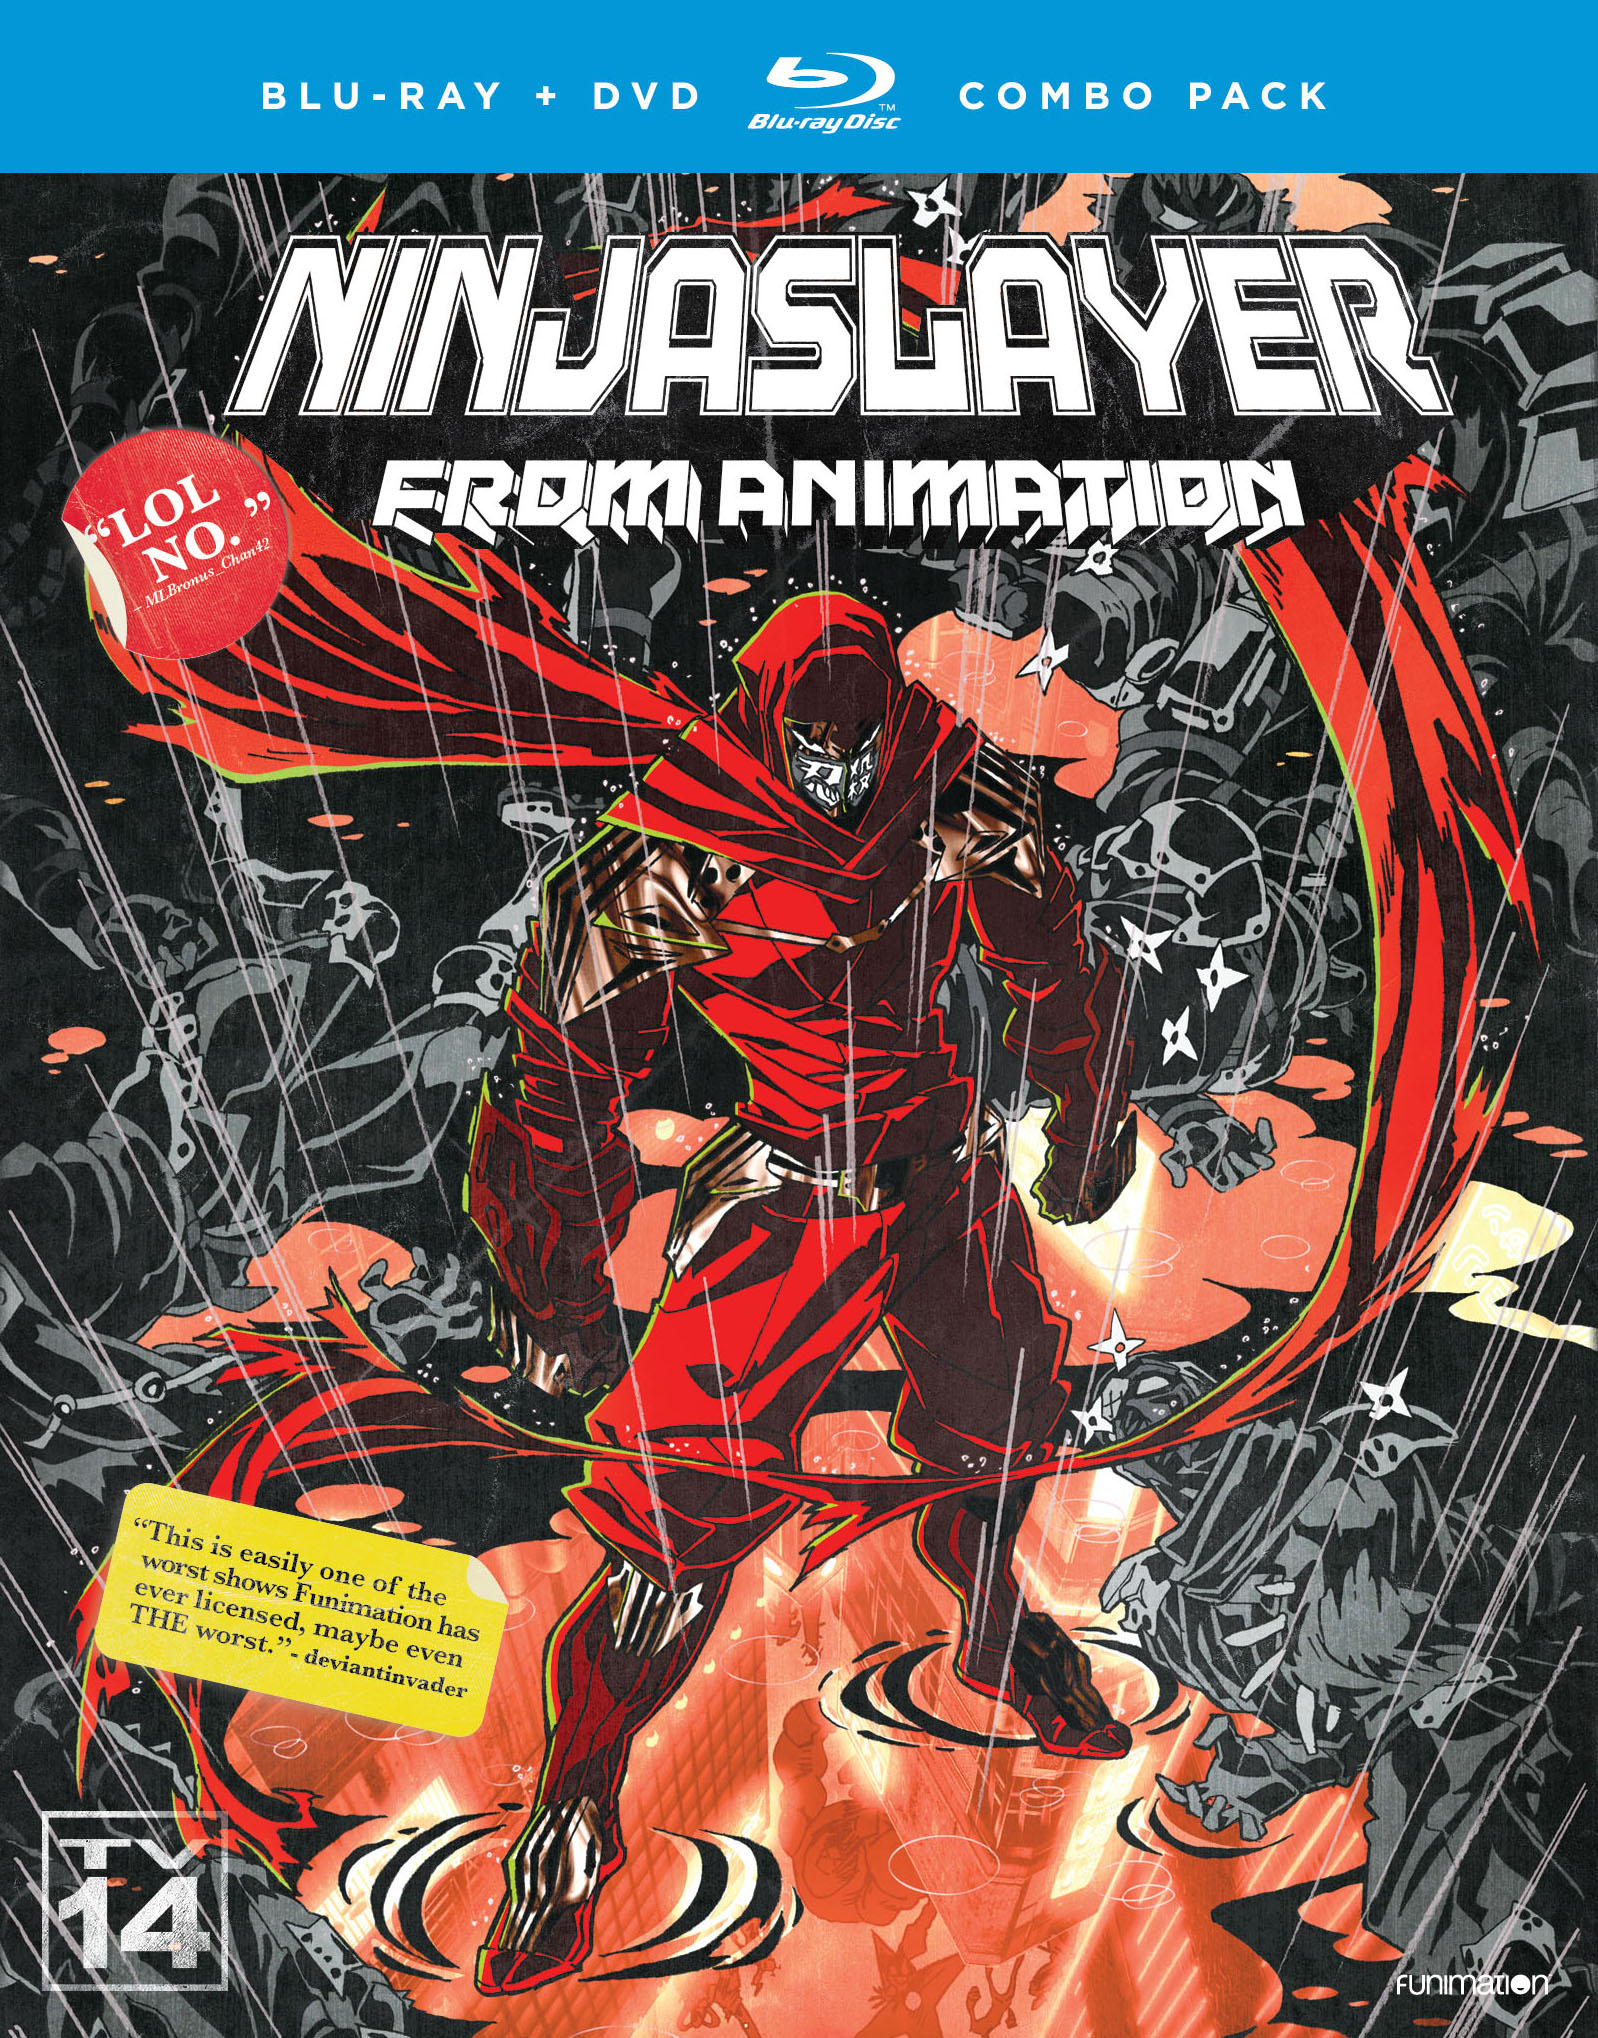 Ninja Slayer Blu-ray/DVD 704400014659